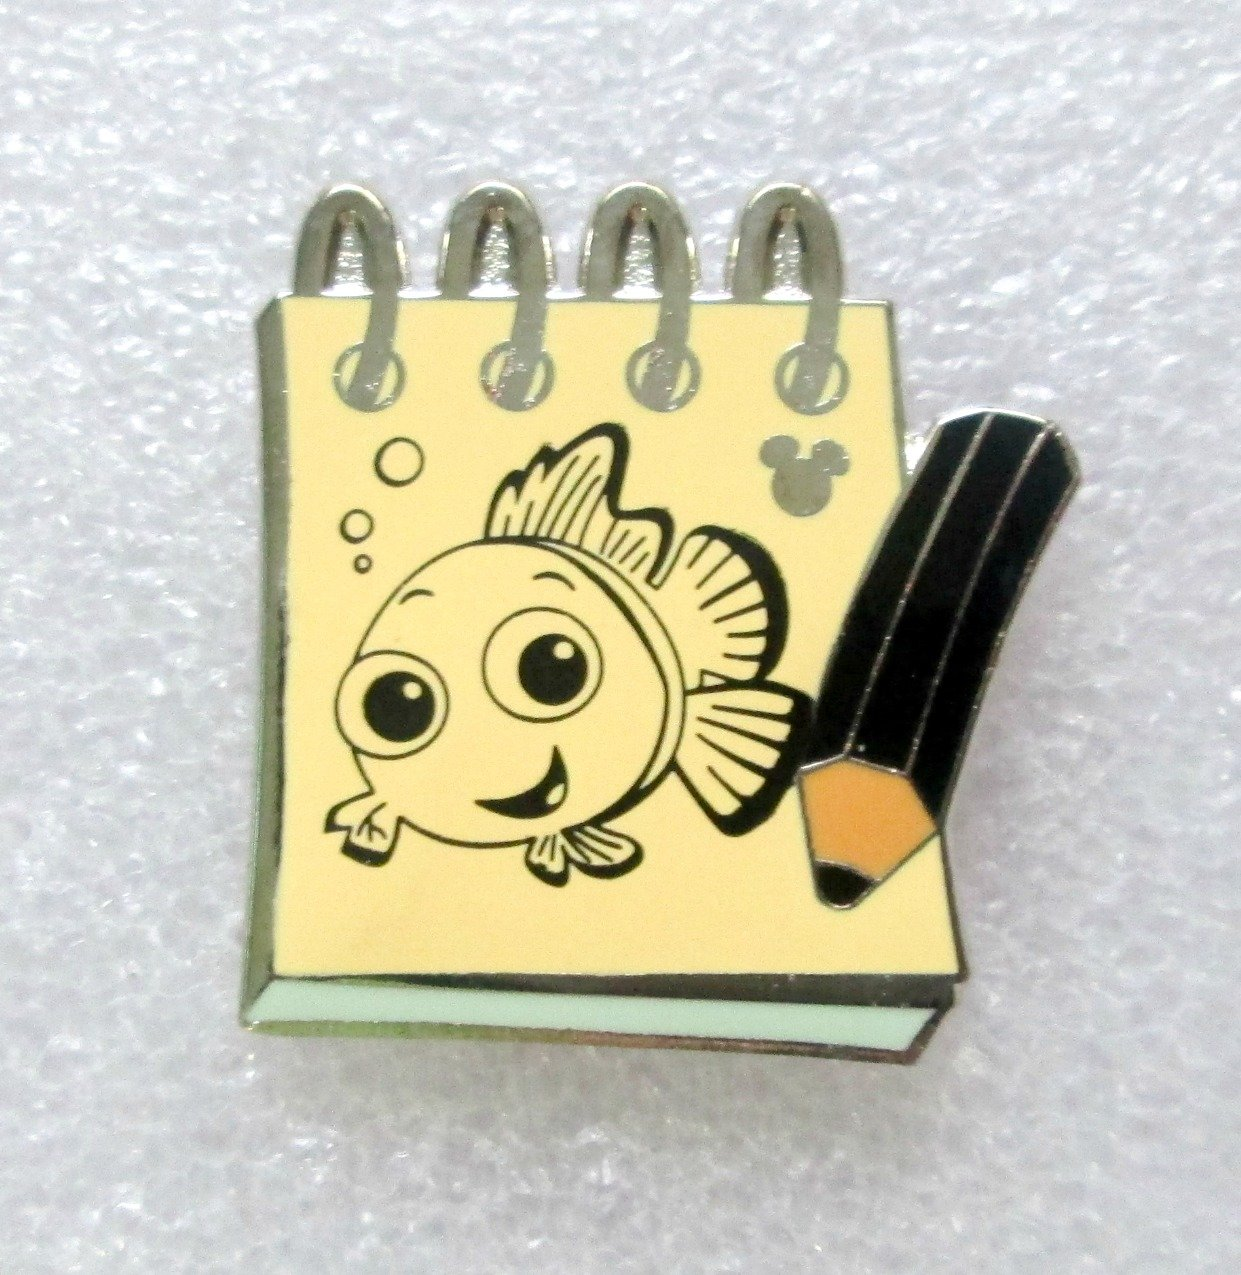 Disney's Hidden Mickey Character Sketch Pads Nemo Disney Trading Pin by Disney